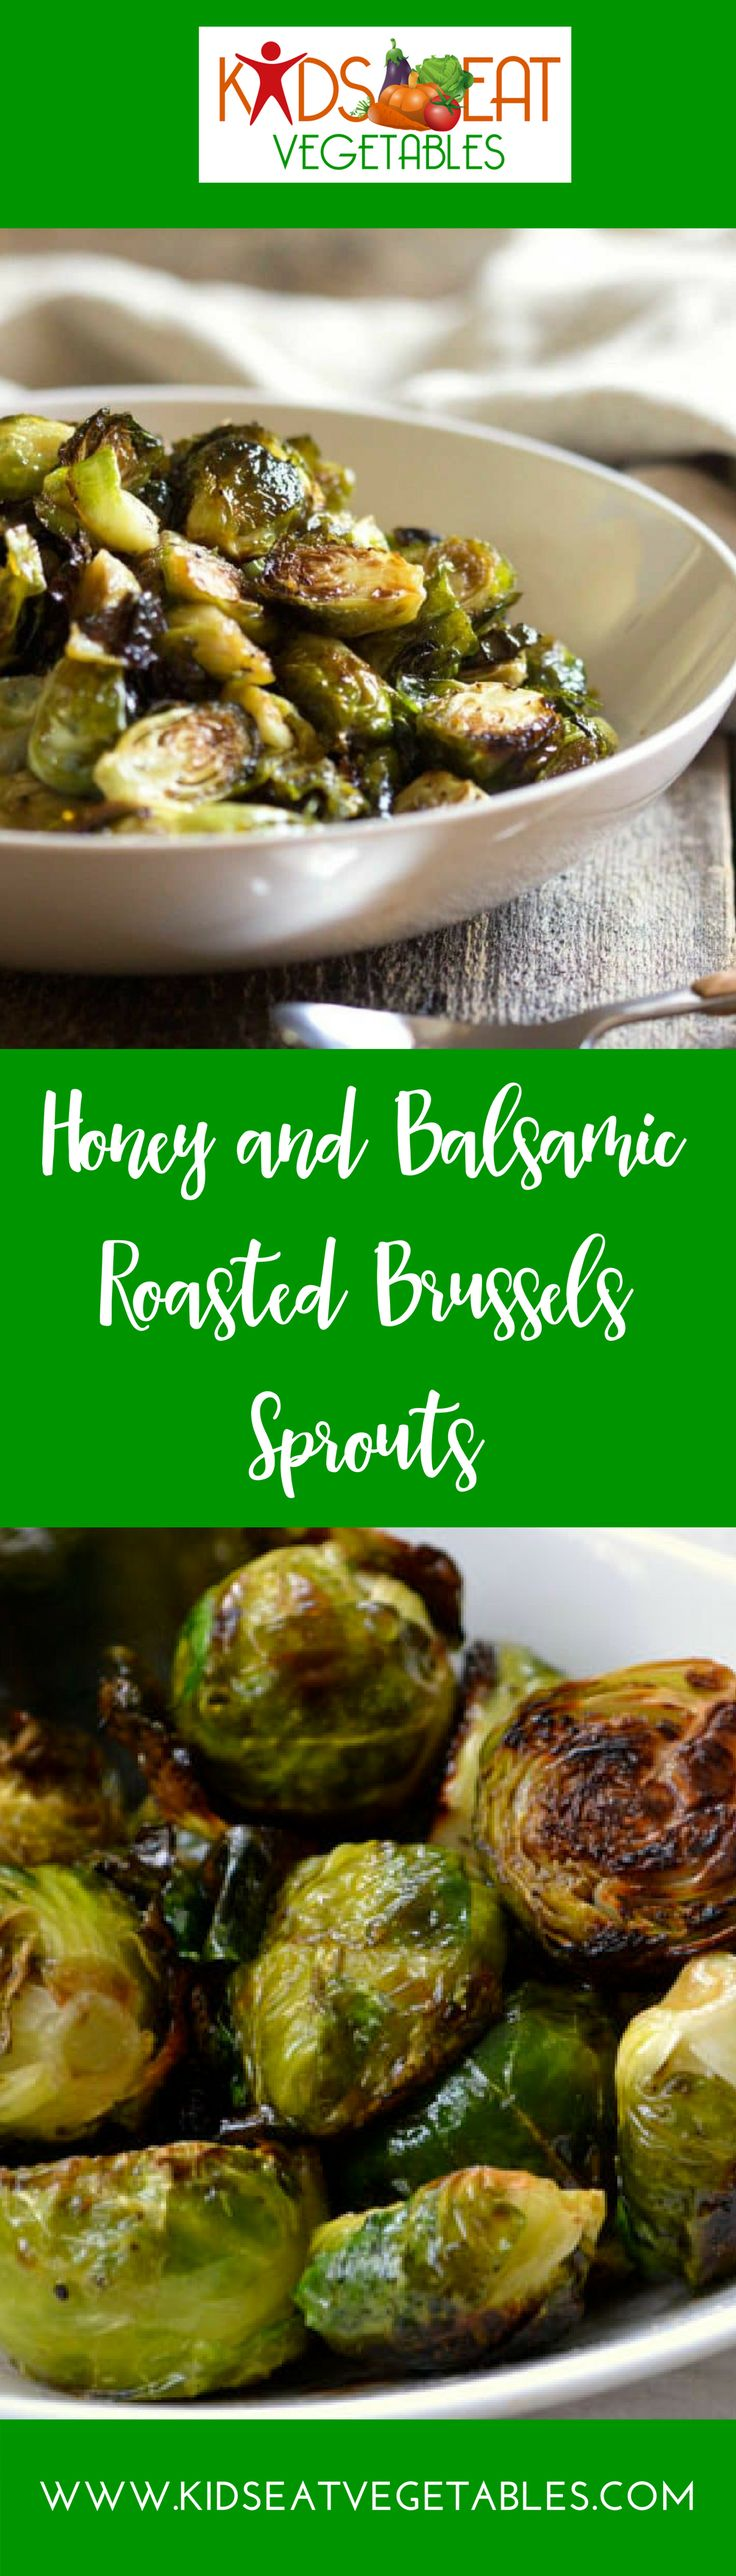 These Honey Balsamic Roasted Brussels Sprouts are not only beyond easy to prepare, but I guarantee they will be gone in no time so make plenty!   These Brussels sprouts are roasted in a high temperature oven until golden brown and crisp, then tossed with a touch of balsamic vinegar and honey. Make extra — they're as addictive as french fries but a lot more healthier!